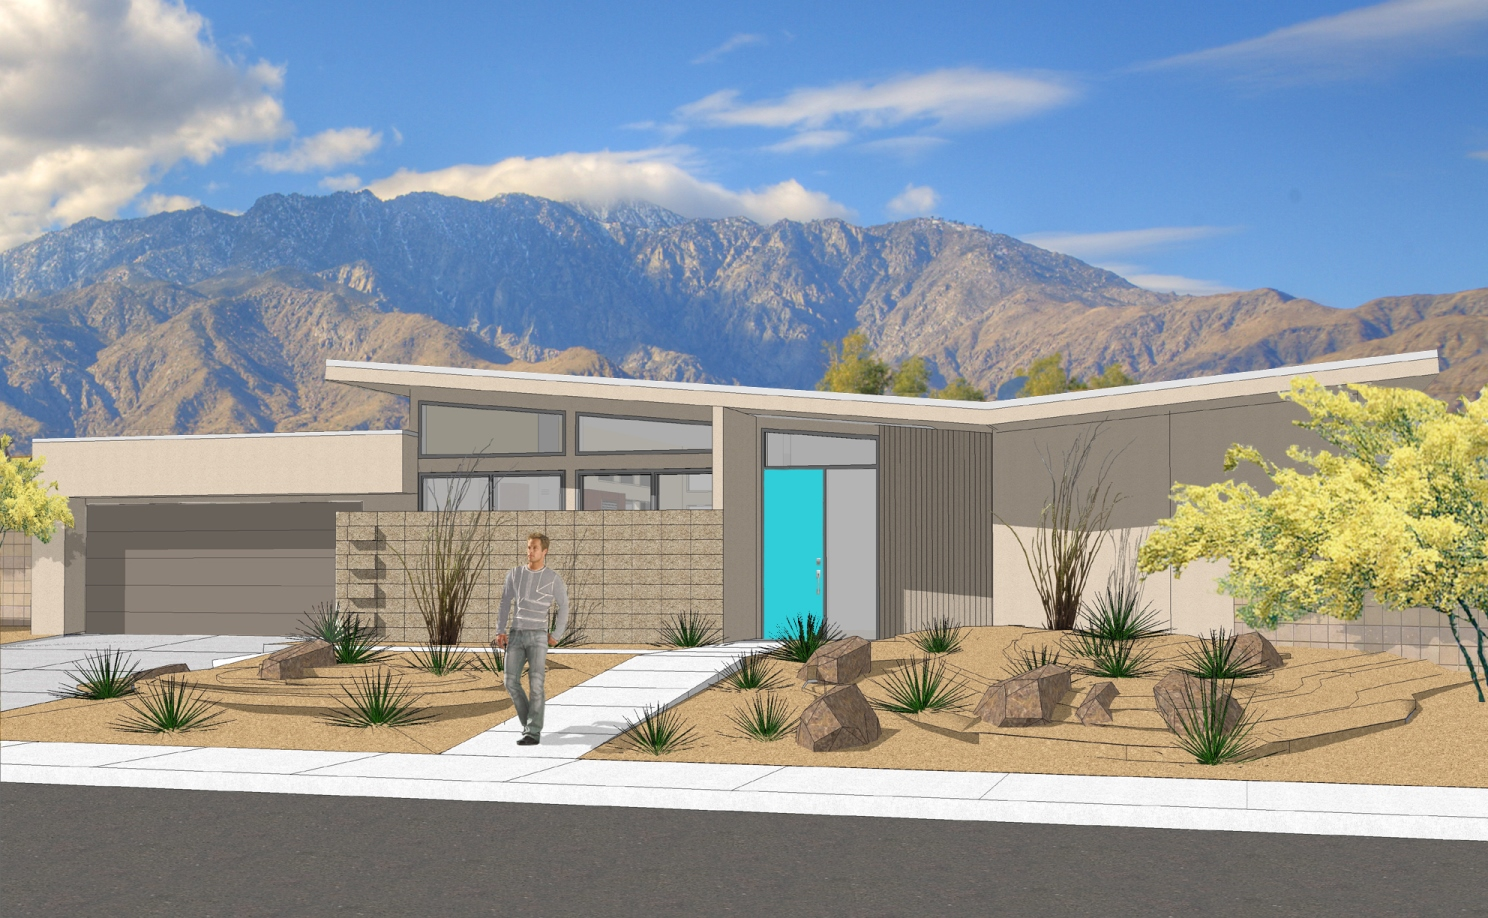 Mid century modern palm springs real estate page 3 for Buy house palm springs